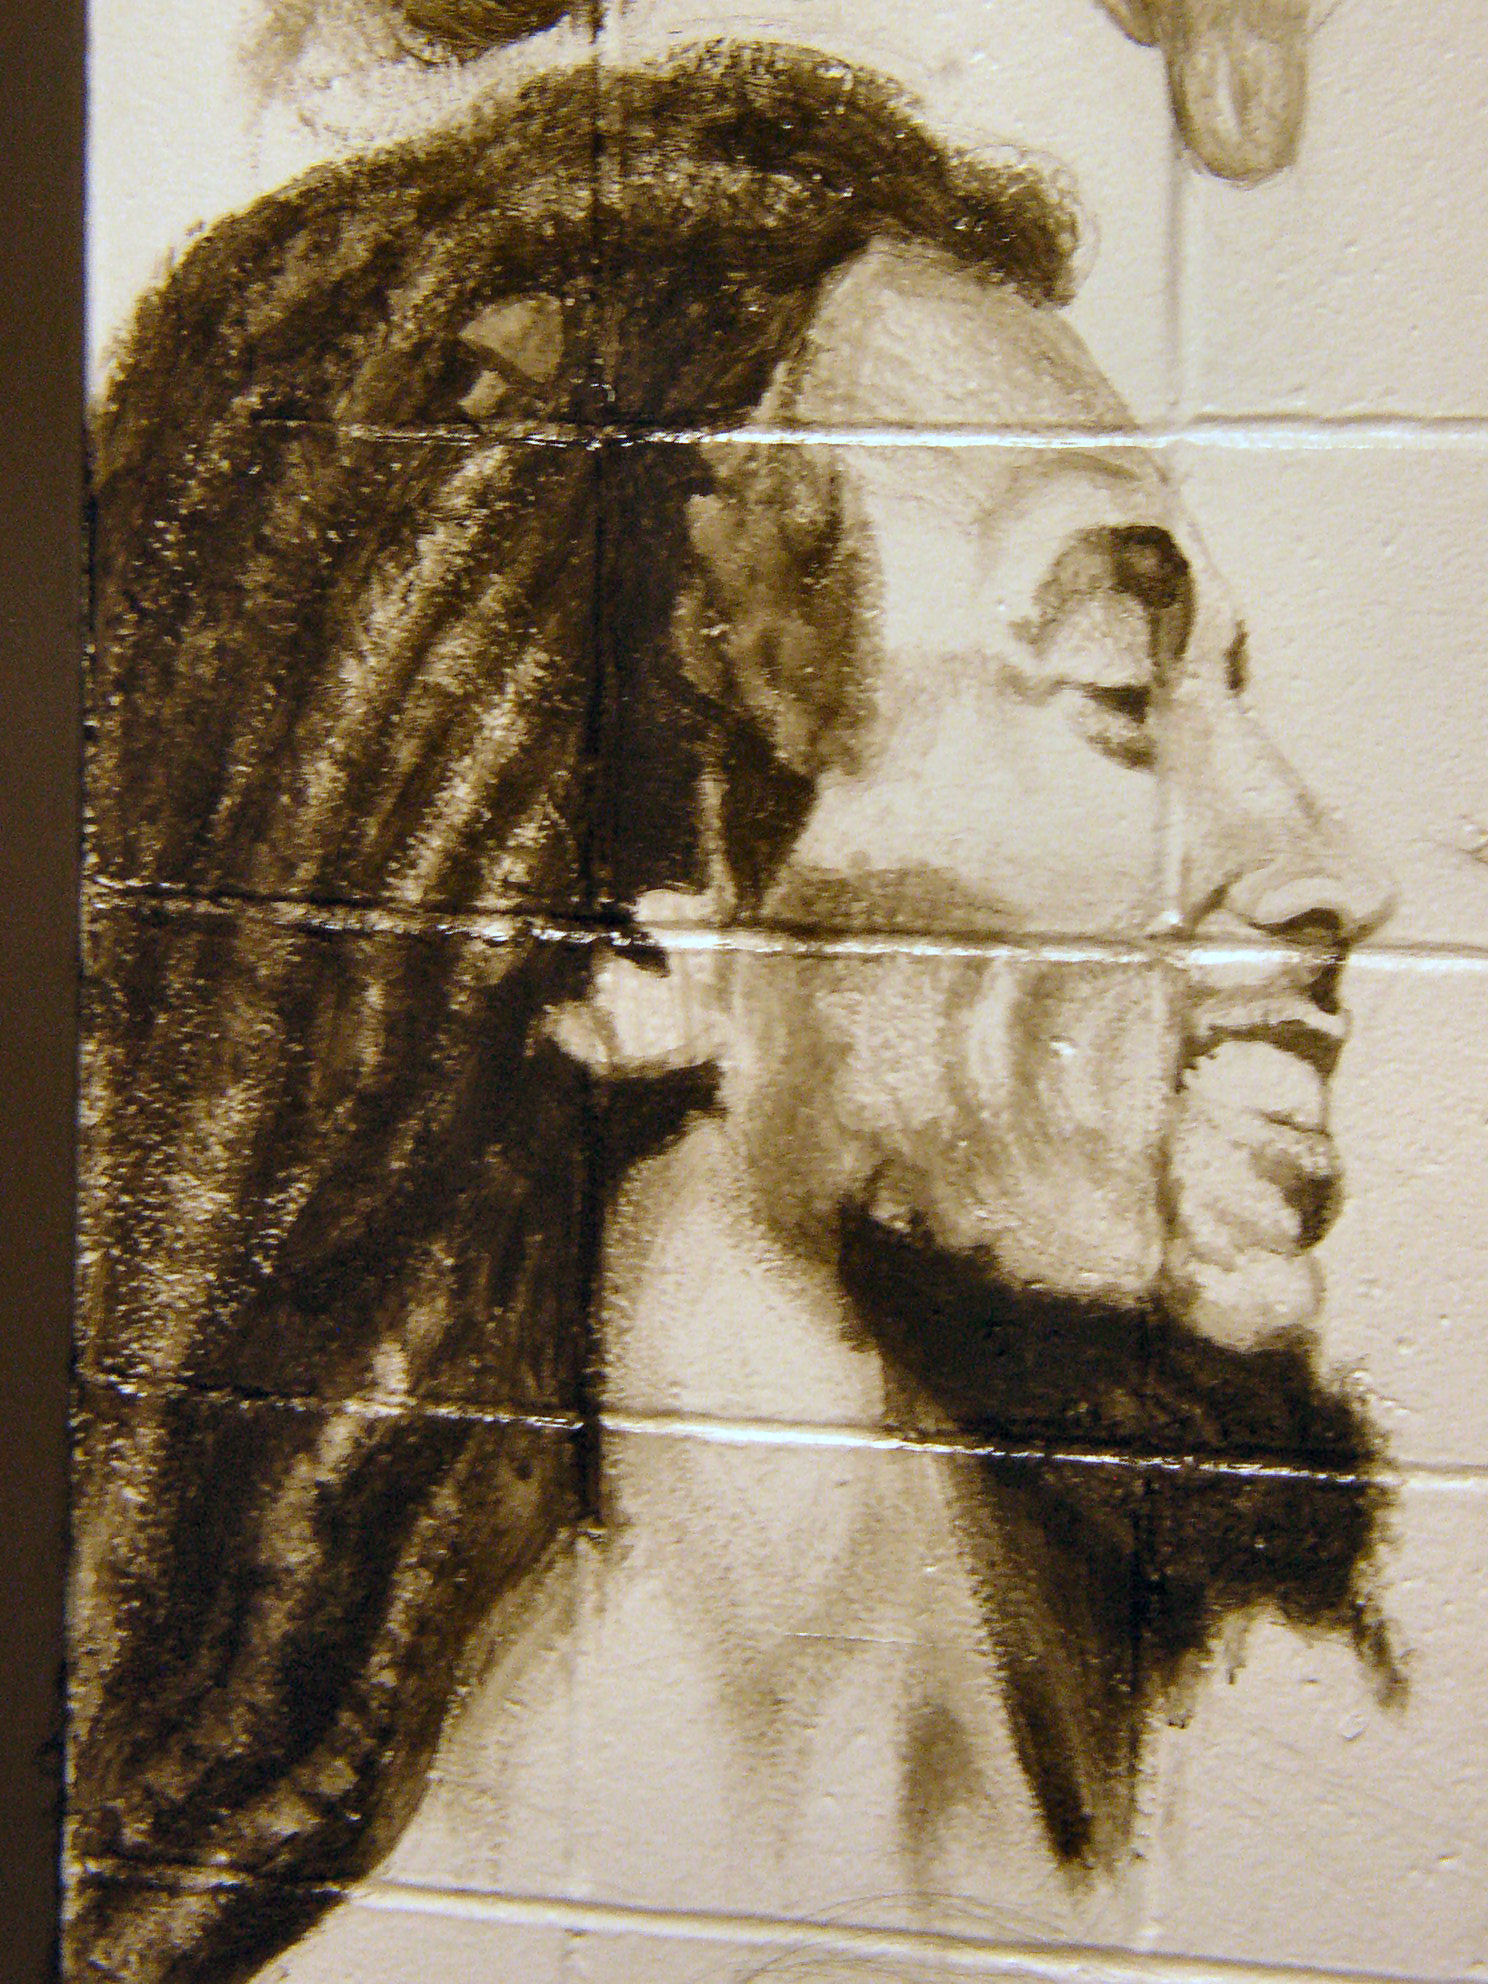 School mural bob marley by deadhead16mb on deviantart for Bob marley wall mural